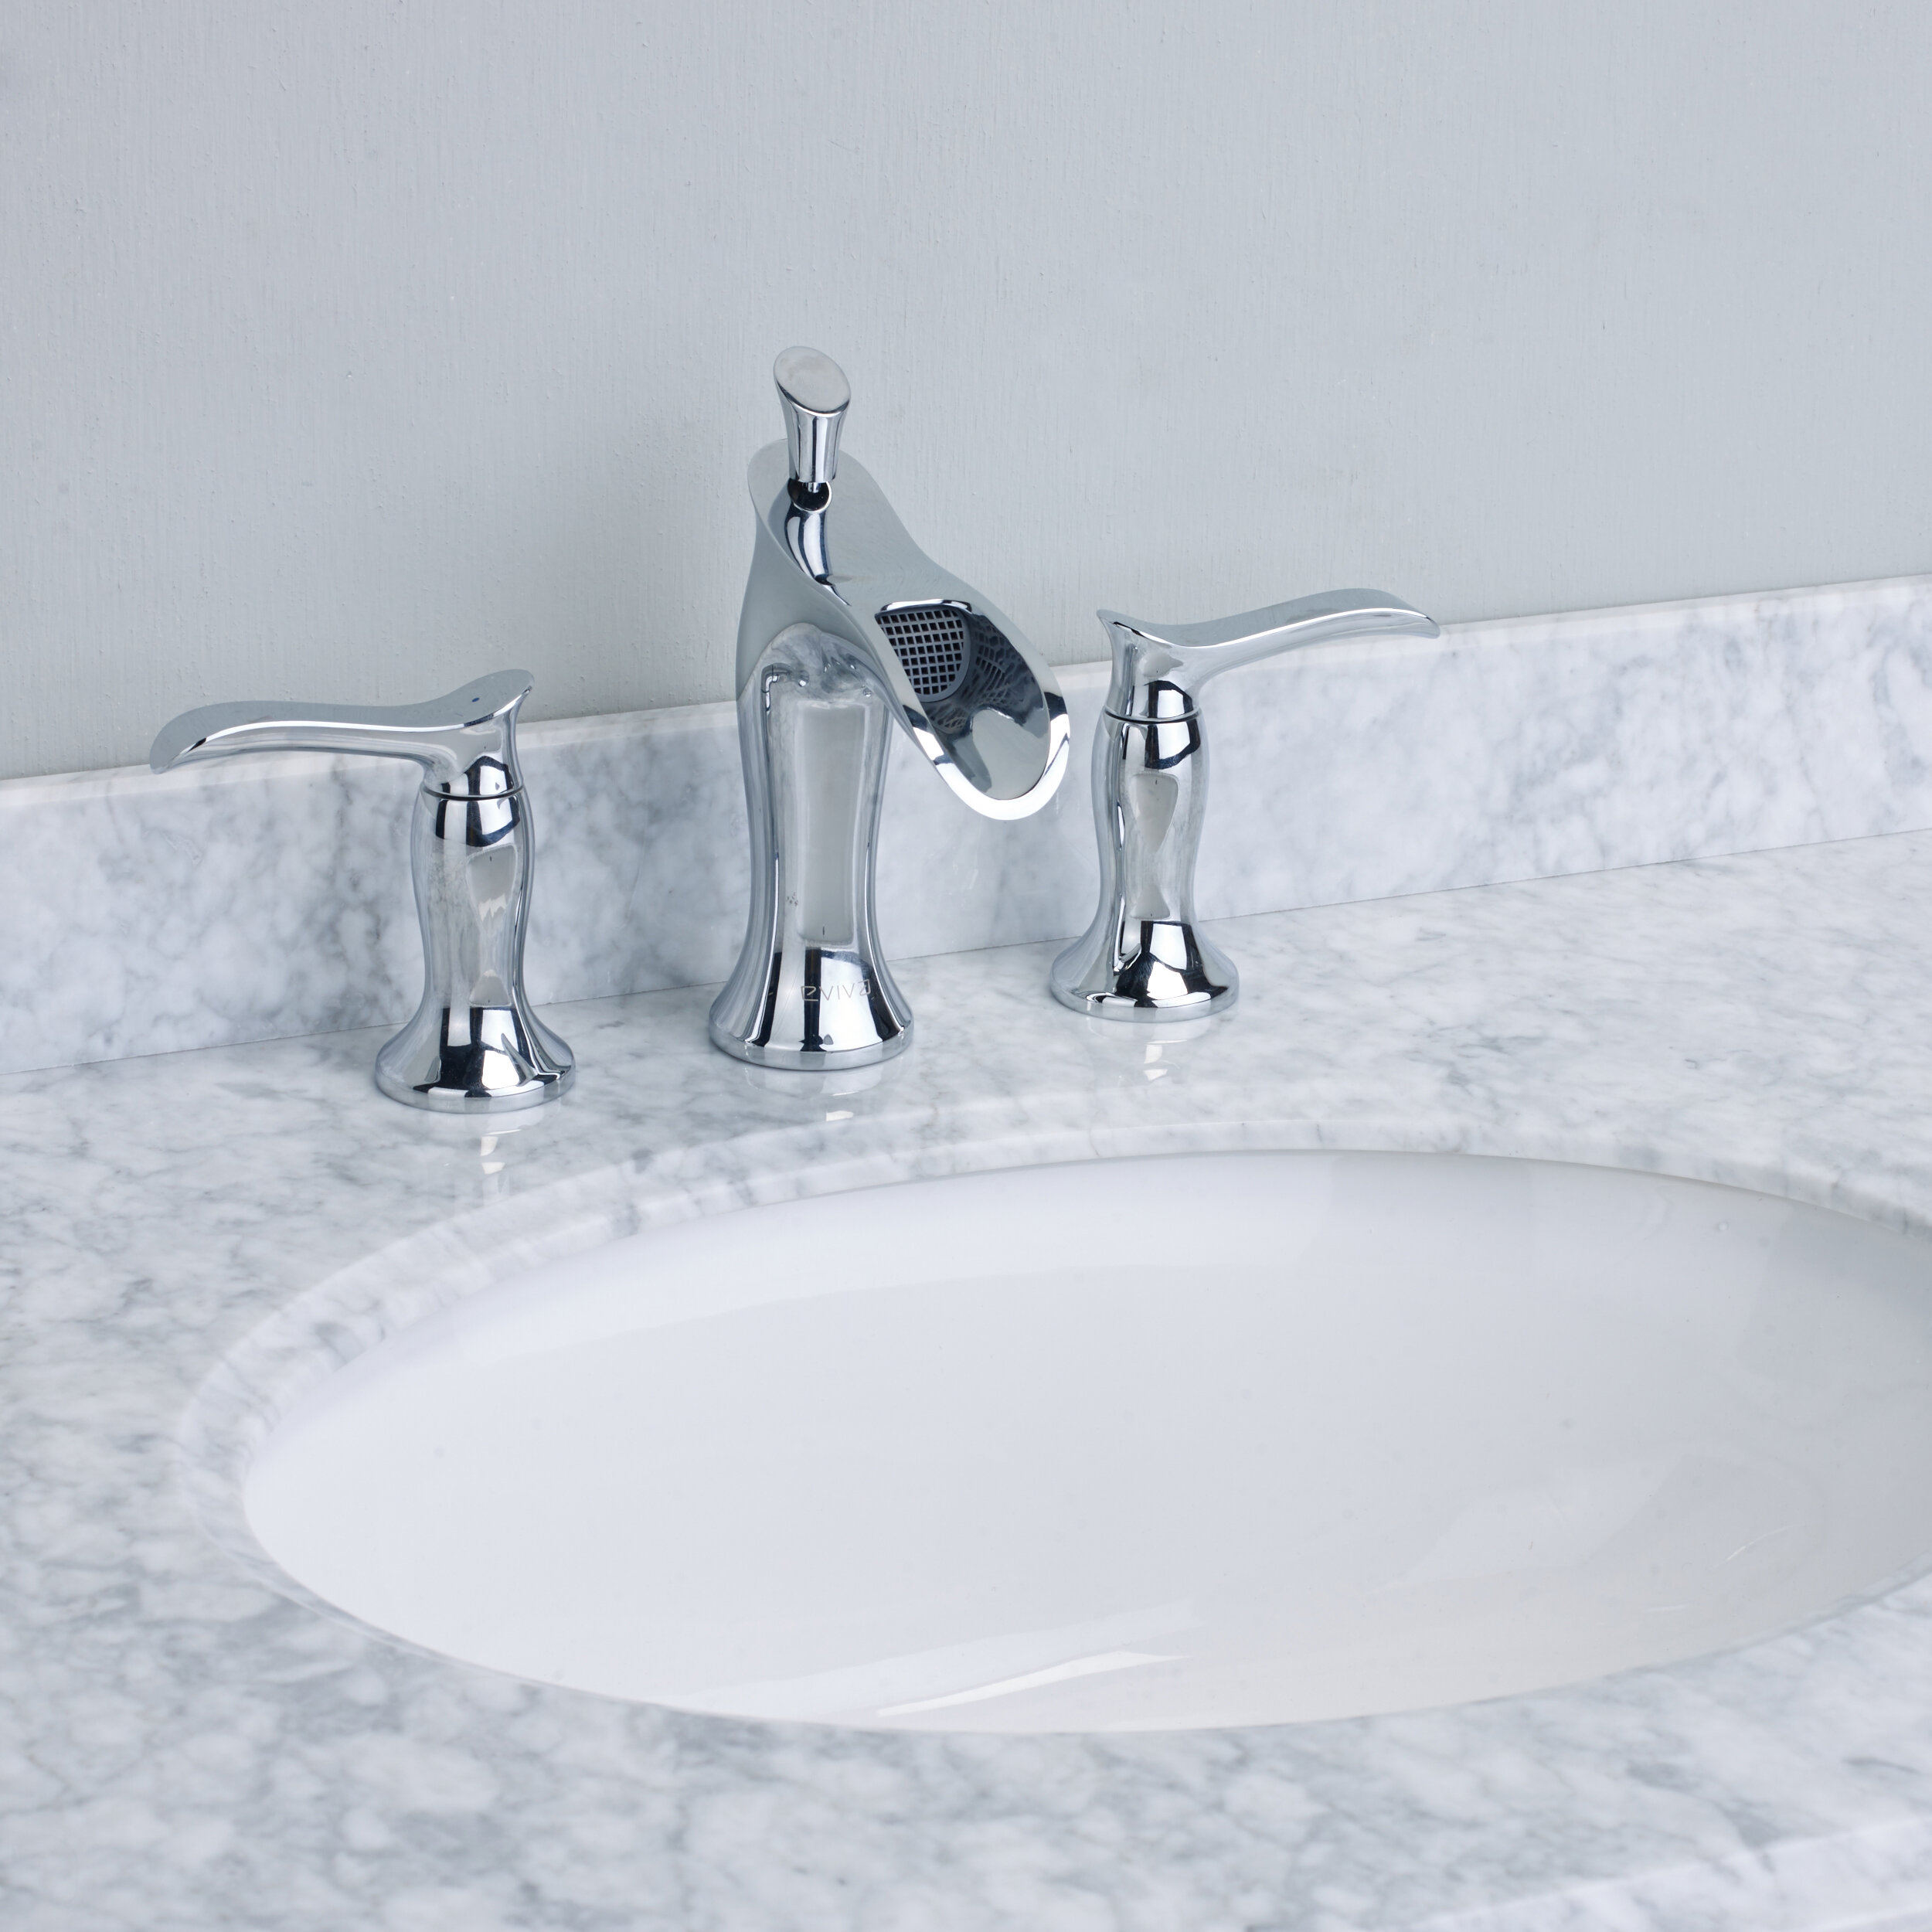 faucets tub quality tubs bathroom wide x proportions versailles faucet premium waterfall affordable within